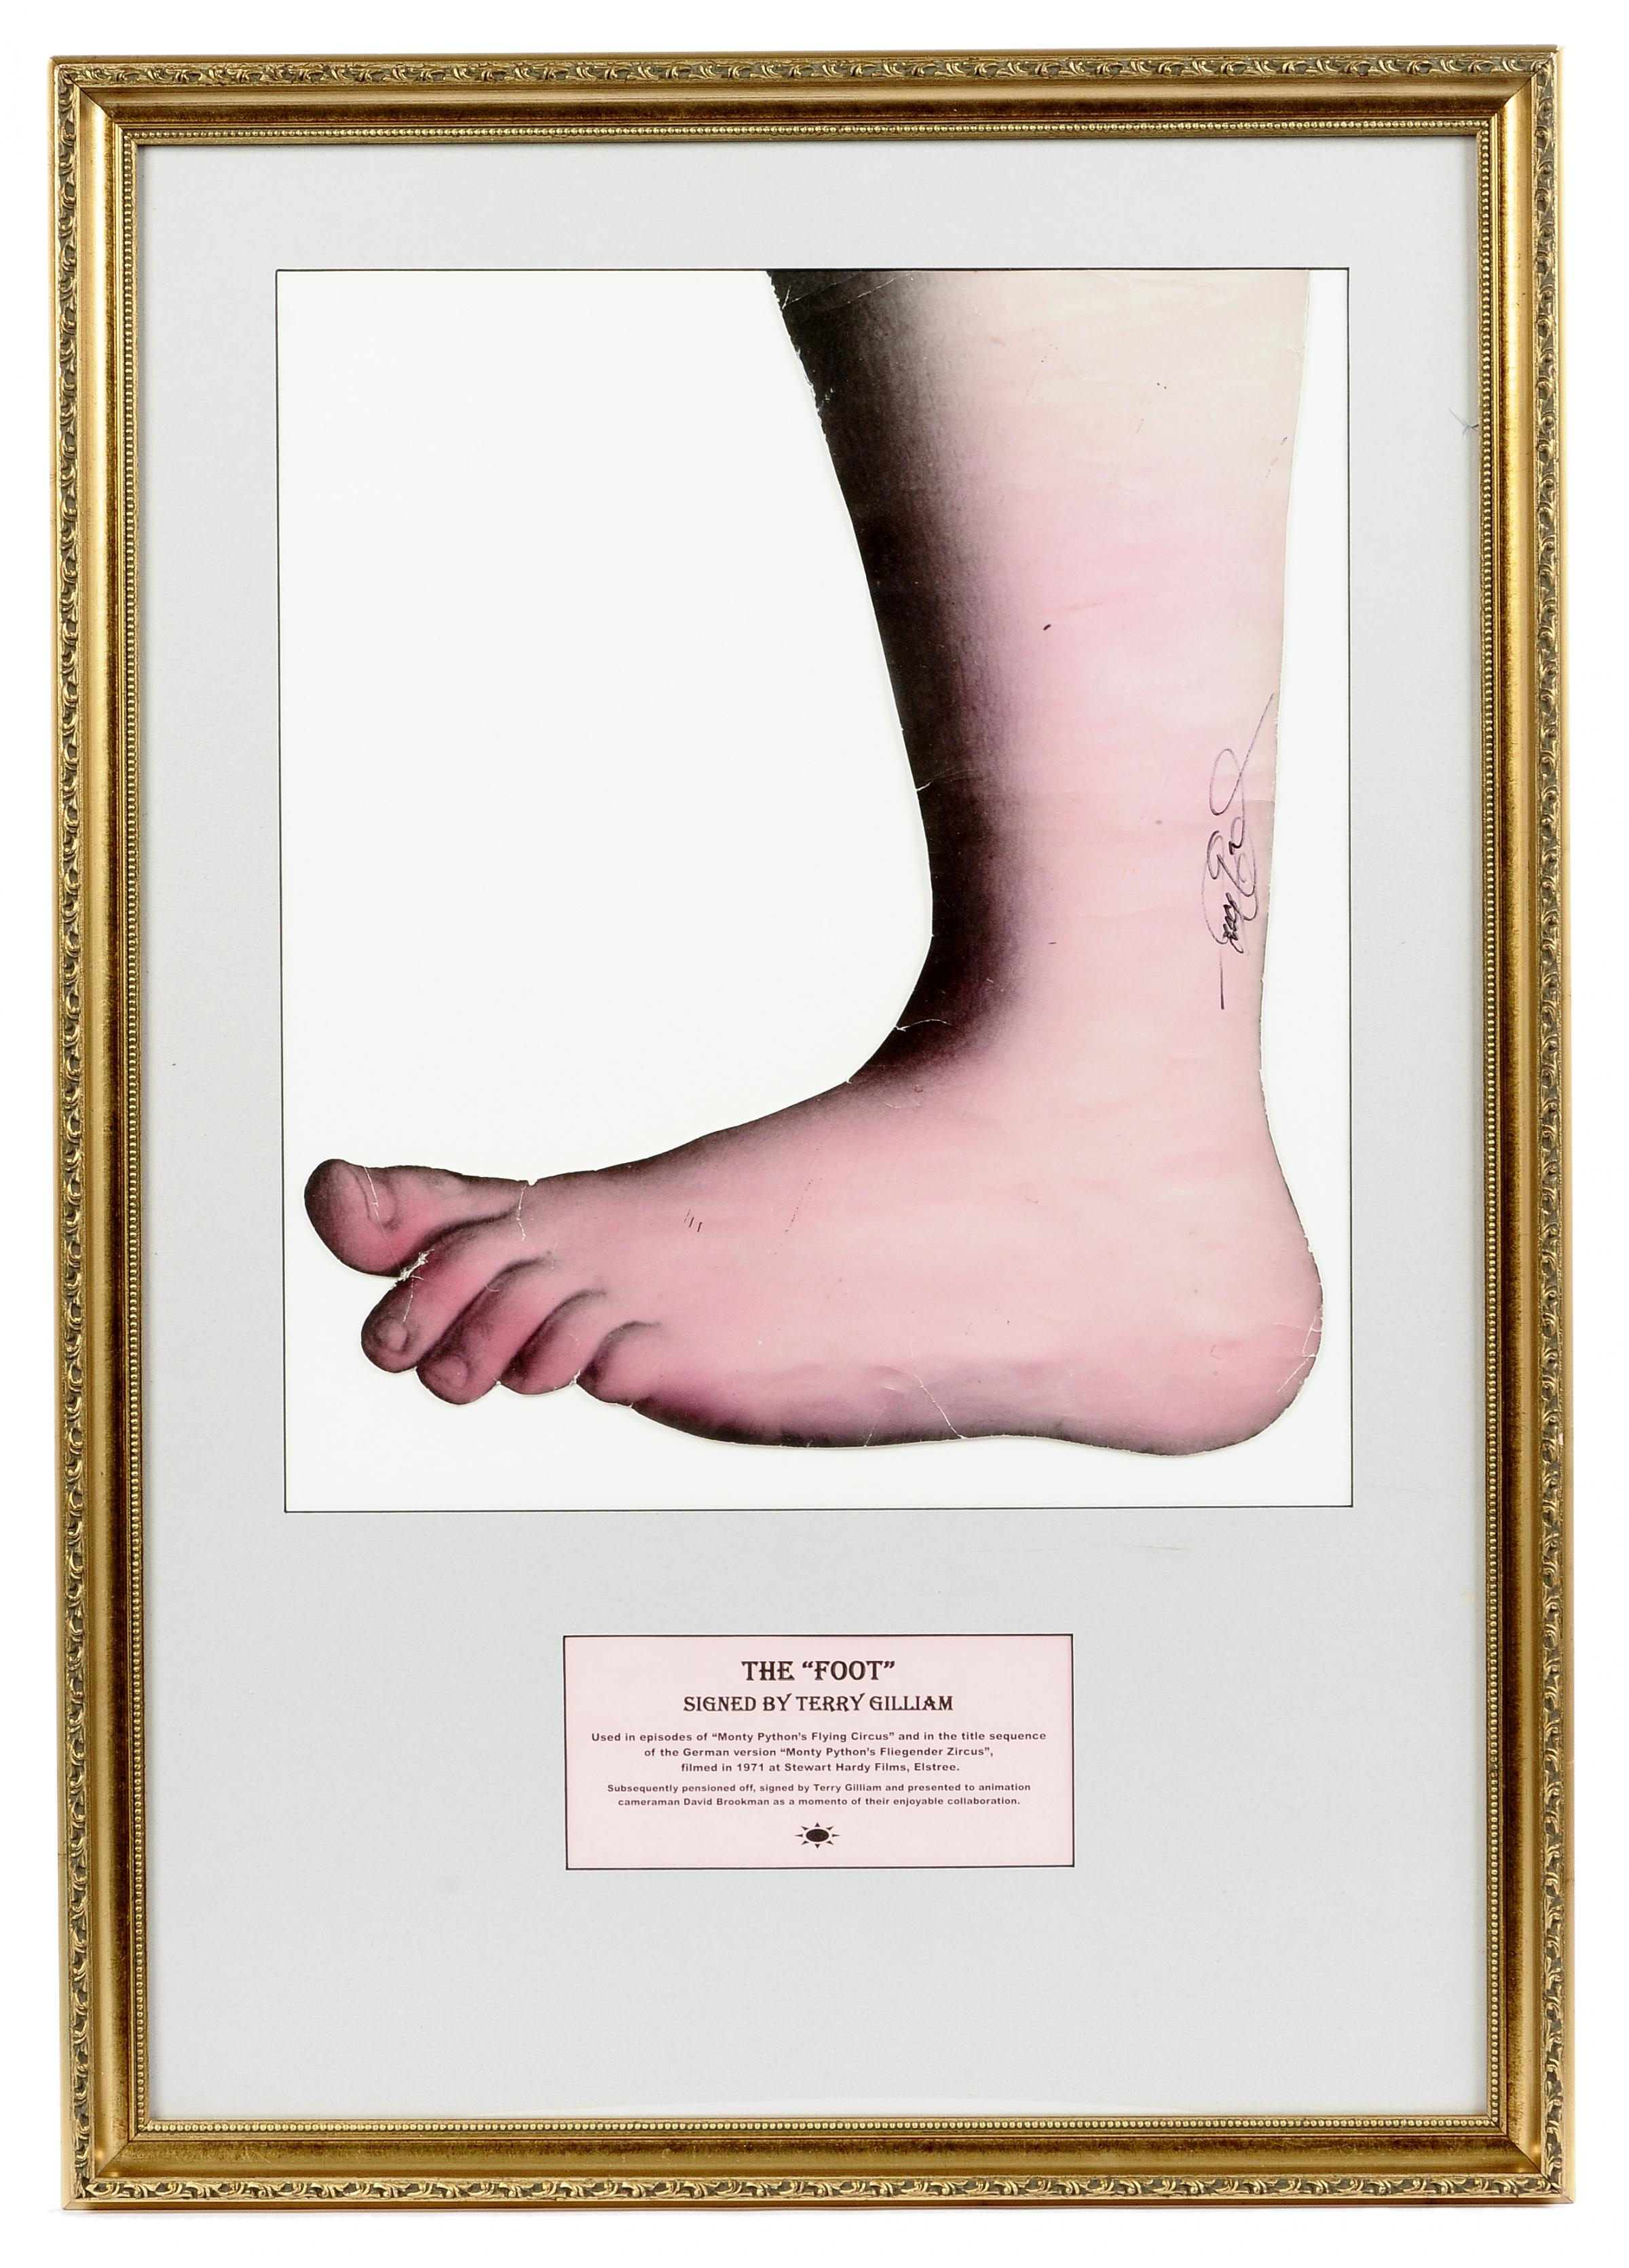 SPLAT: The Monty Python foot